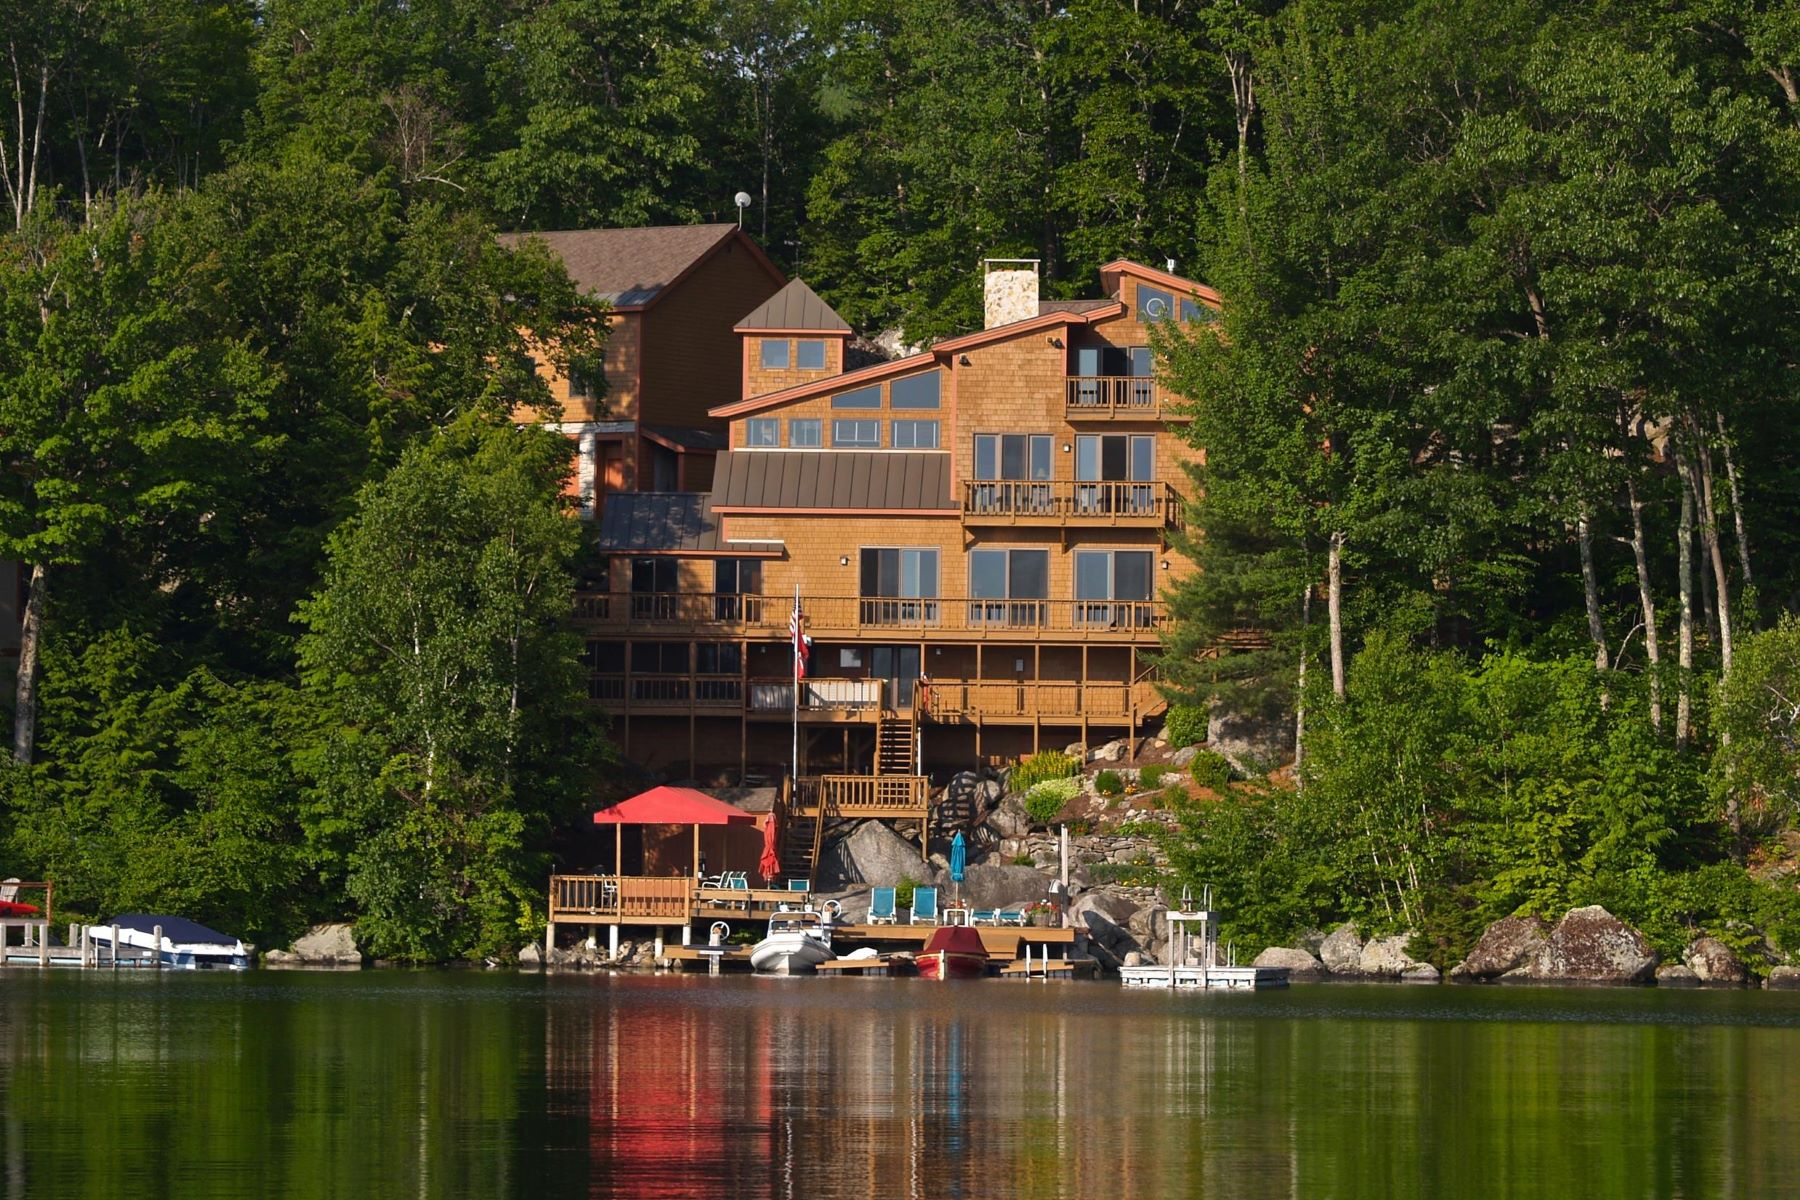 Single Family Homes for Active at Lake Sunapee 354 Bay Point Rd Sunapee, New Hampshire 03782 United States